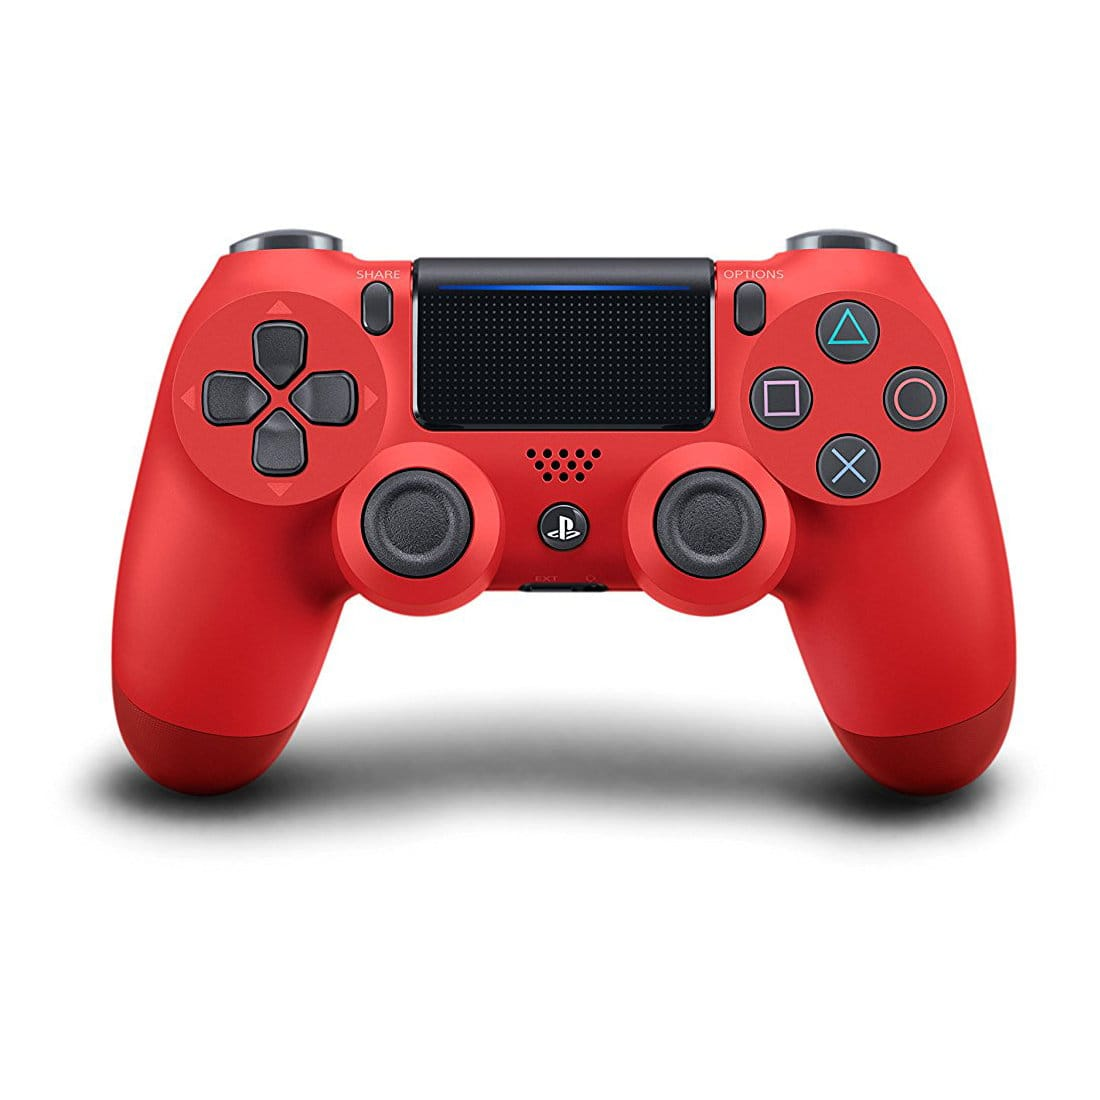 PlayStation 4 DualShock 4 Wireless Controller - New Version - Red or Black $39.91 AC + Free Shipping